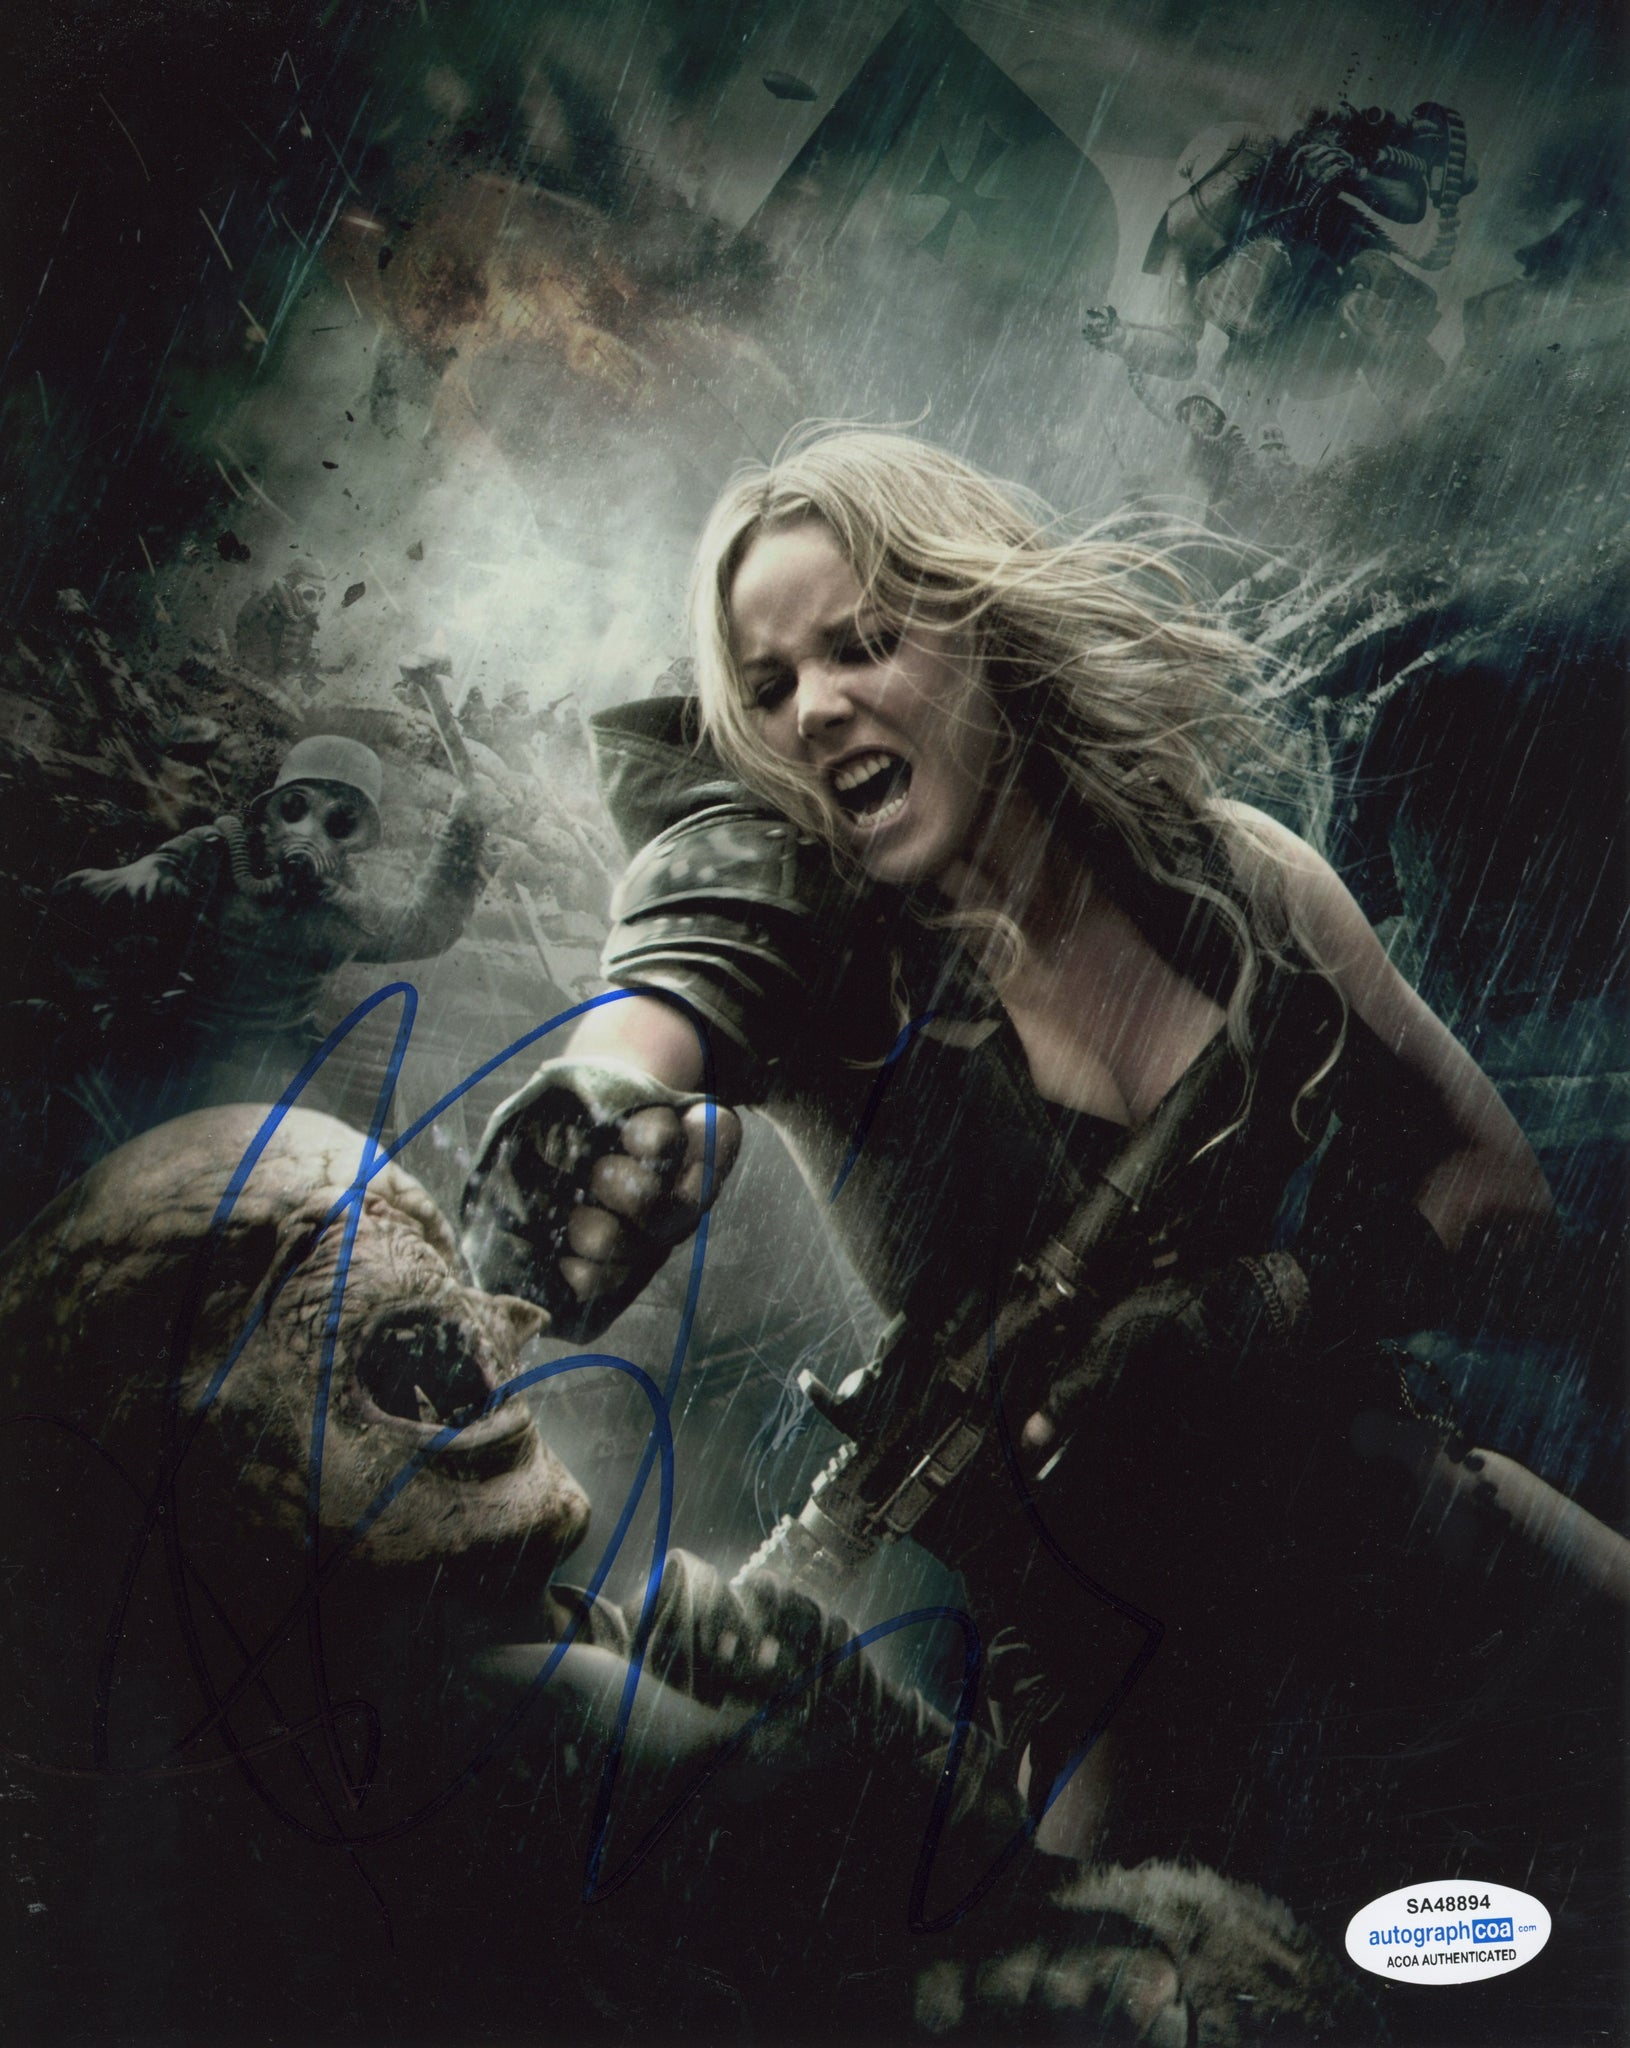 Abbie Cornish Sucker Punch Signed Autograph 8x10 Photo ACOA